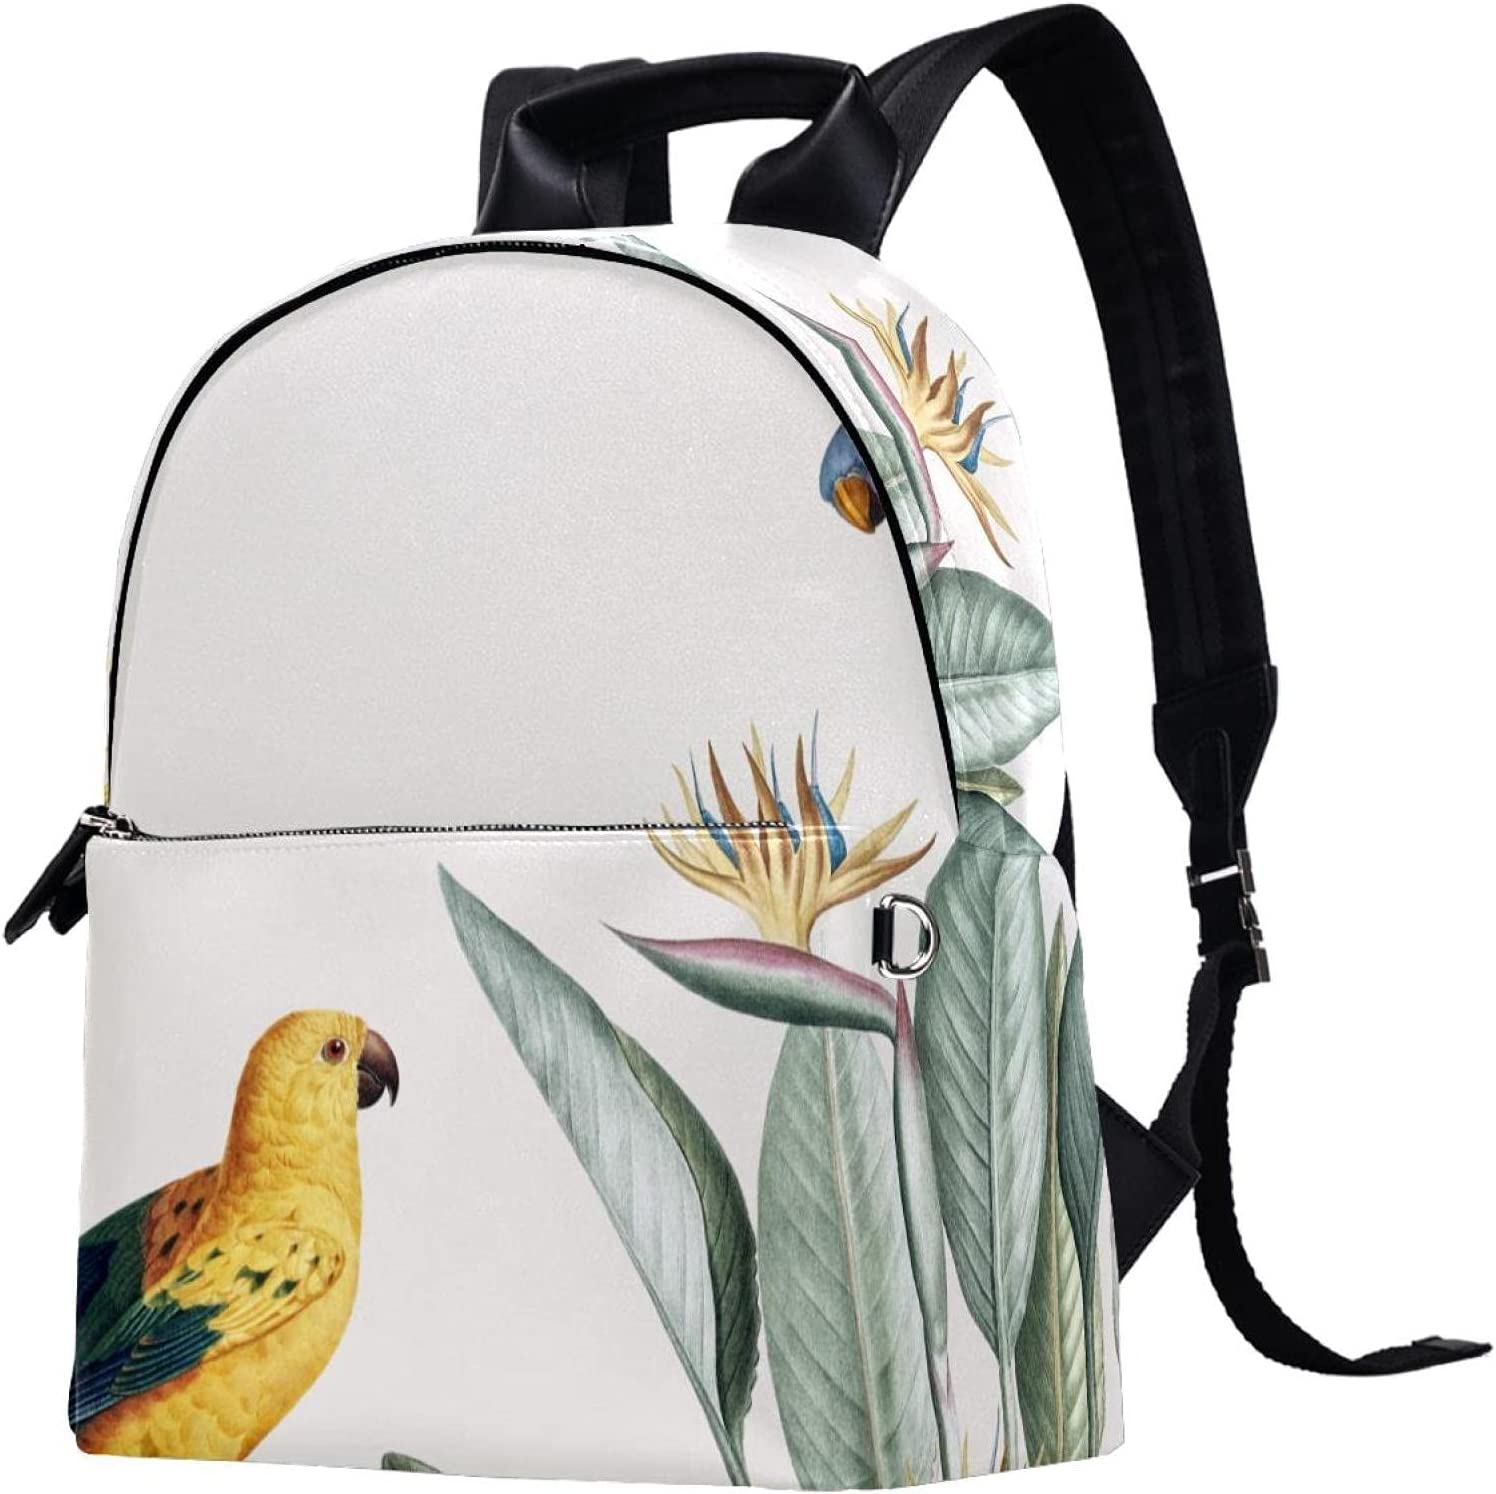 Ranking NEW before selling ☆ TOP9 Backpack Size: 14.5x12.5x5.9 in Casual Leather Fashion